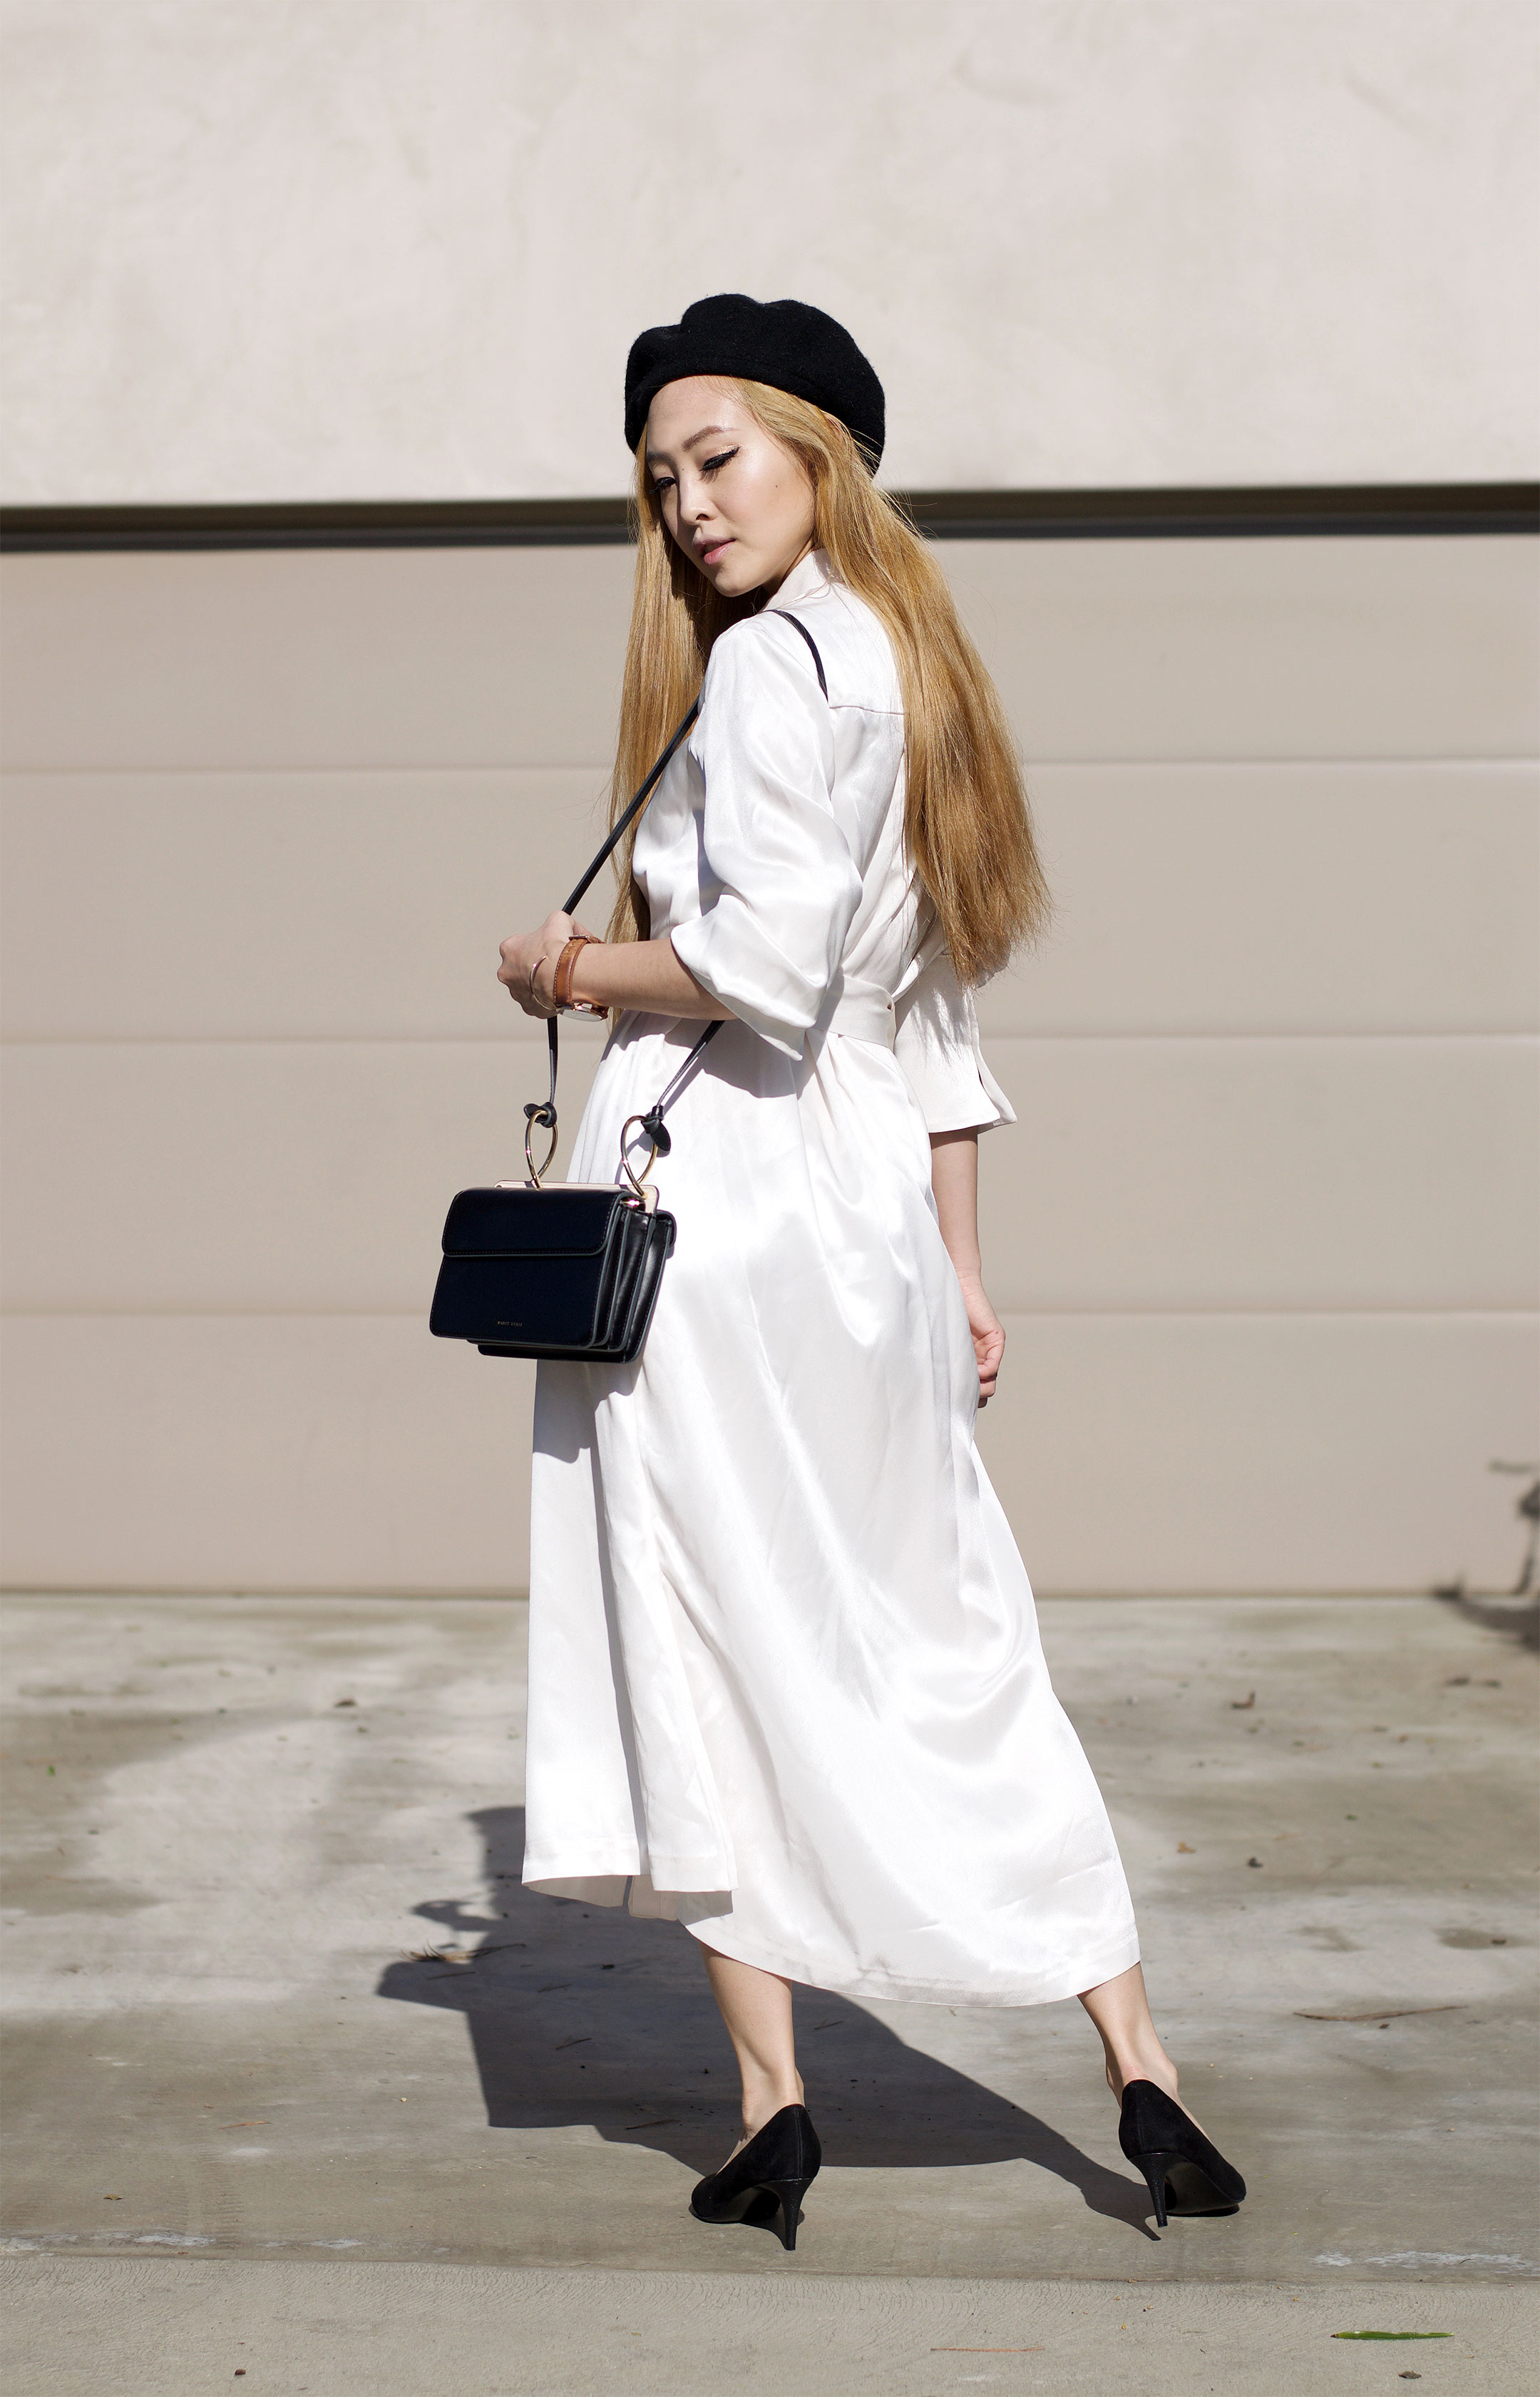 Today I wanted to share with you the perfect shirt dress for spring. A white button up is such a classic and timeless piece, that it makes sense to turn the flattering silhouette into a dress. | SPRING FASHION | SPRING OUTFIT | MAXI DRESS | SATIN DRESS | WHITE SHIRT DRESS | LONG DRESS WITH SLIT | BERET | KITTEN HEELS |